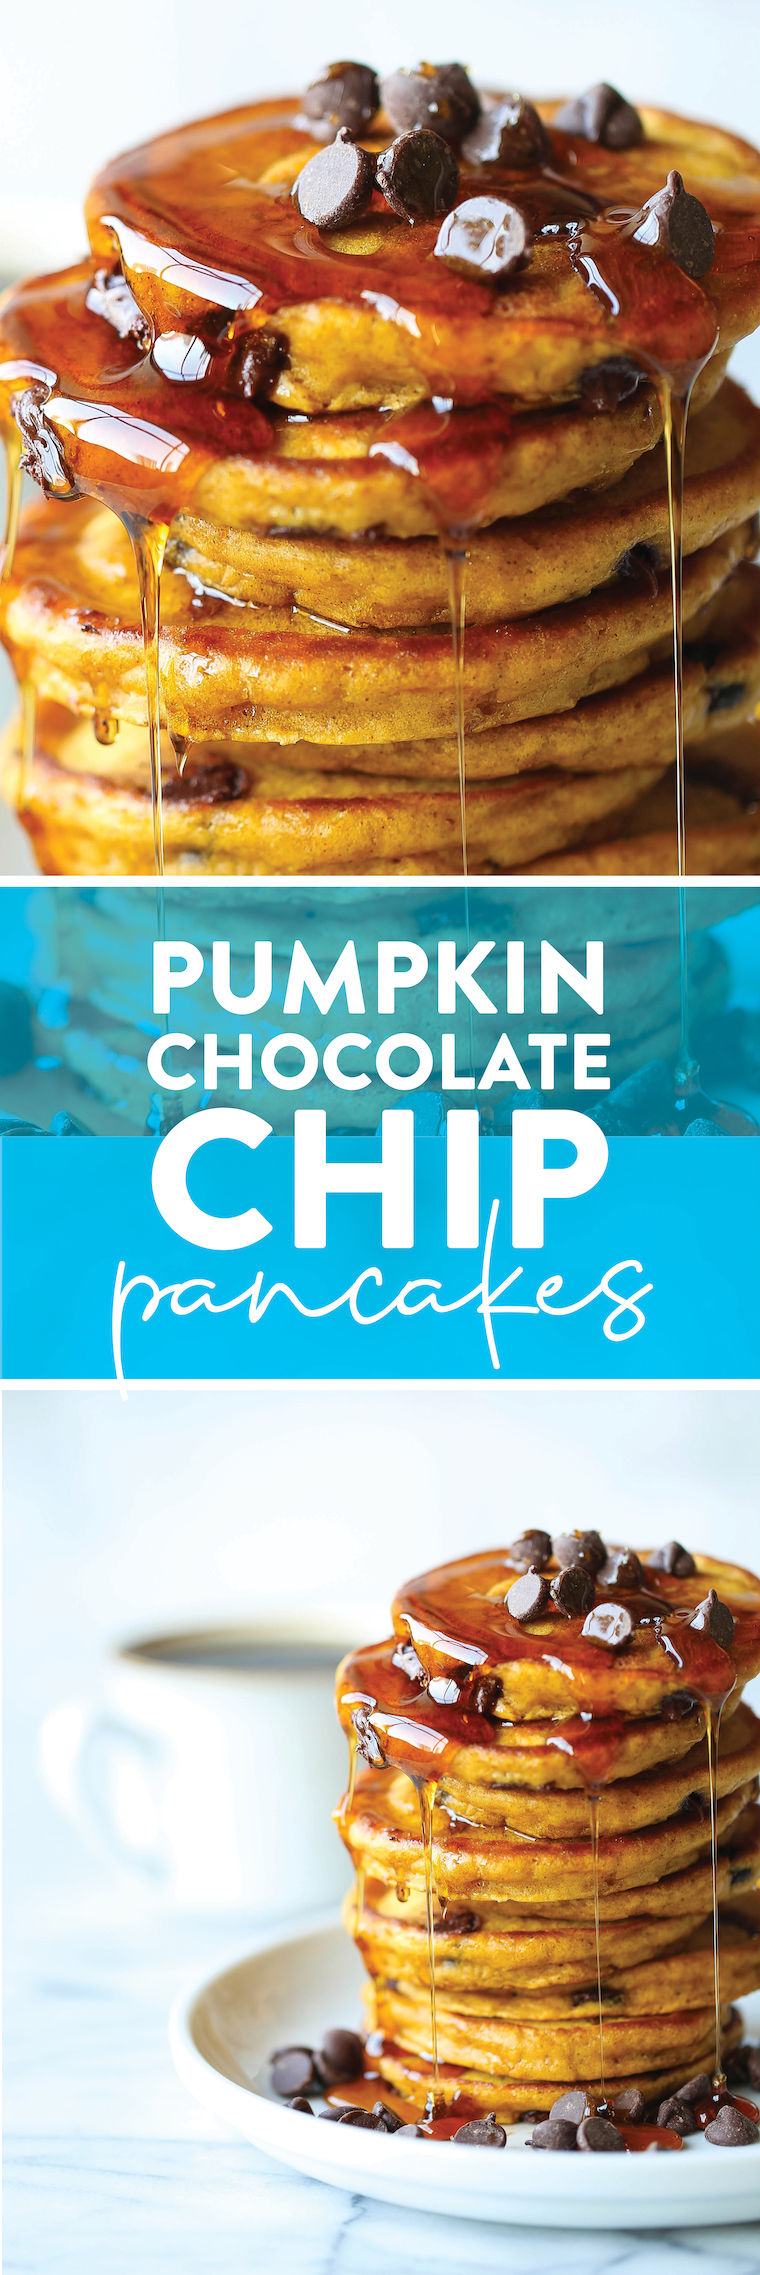 Pumpkin Chocolate Chip Pancakes - The most amazing pumpkin pancakes - so light + fluffy and made with semisweet chocolate chips. PERFECTION.